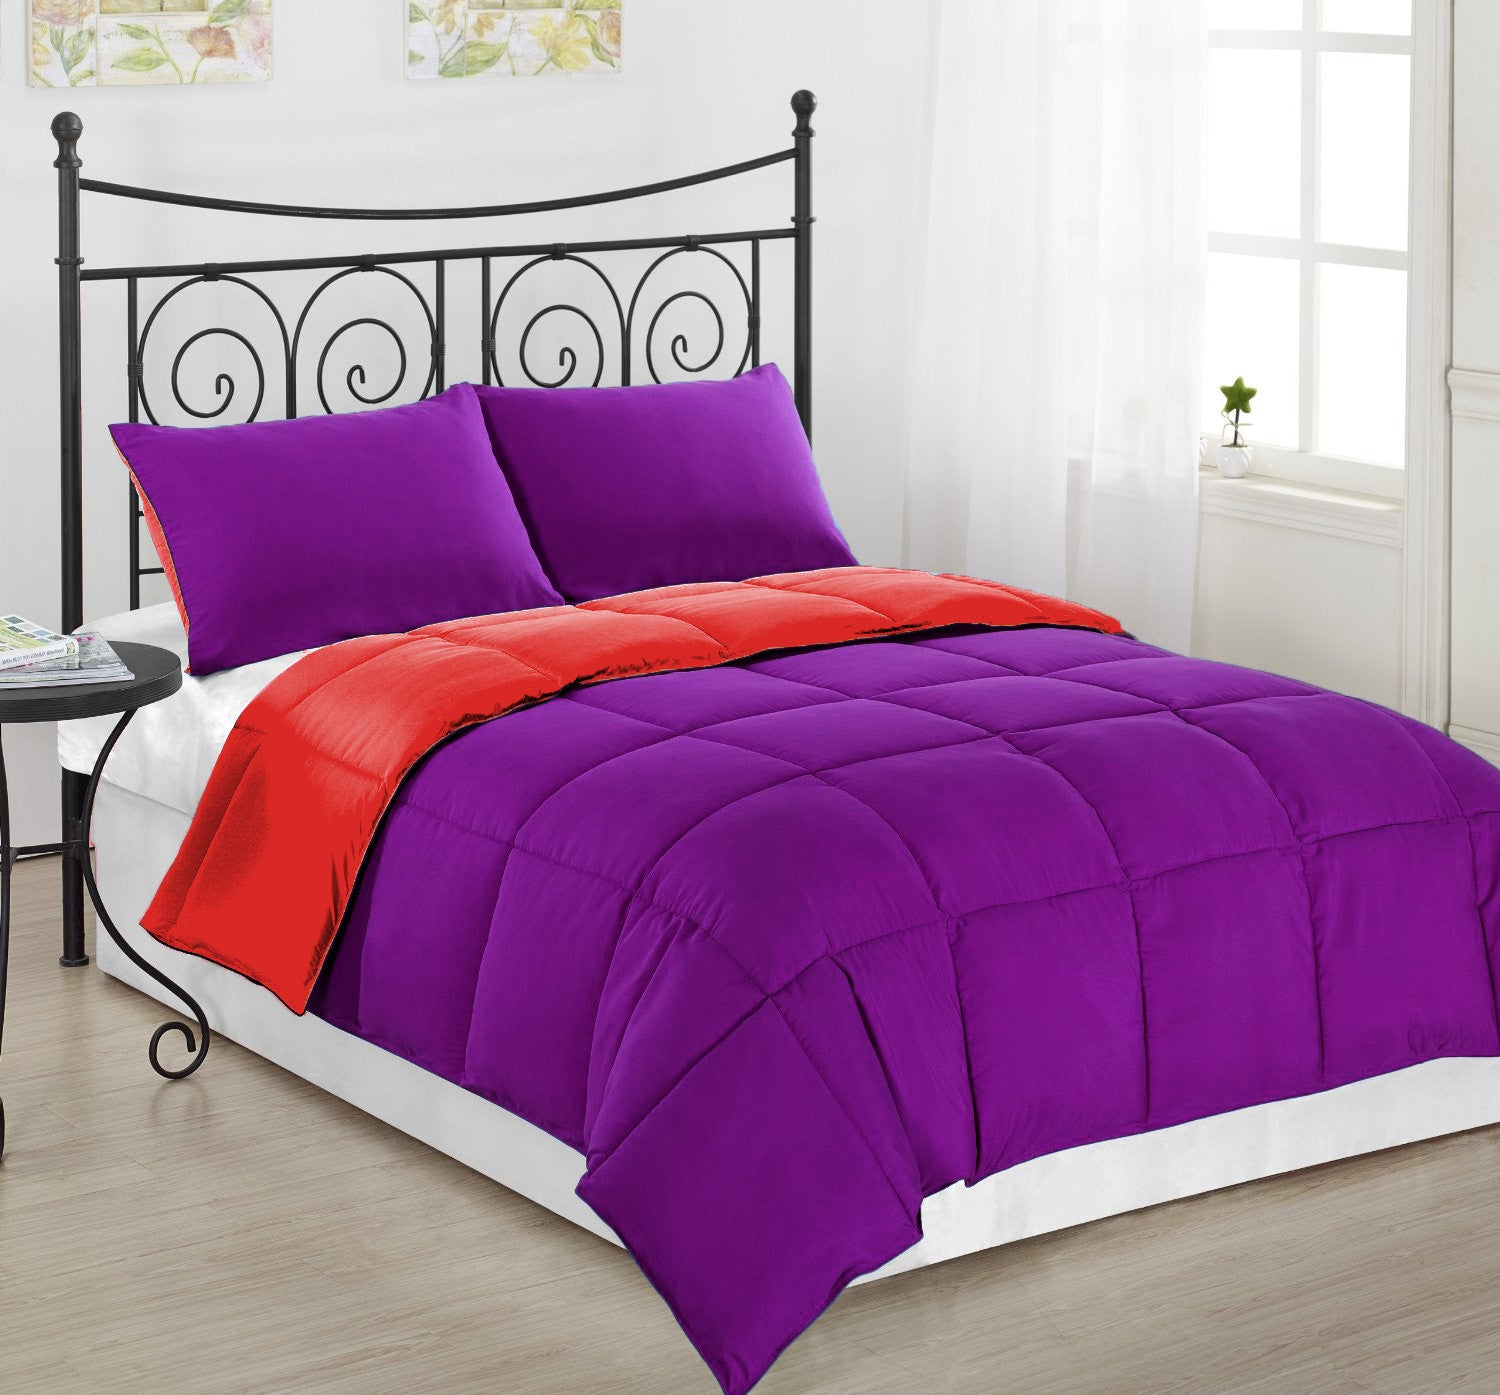 3pc Reversible Purple And Red Alternative Down Comforter Queen Ahhsomedeals